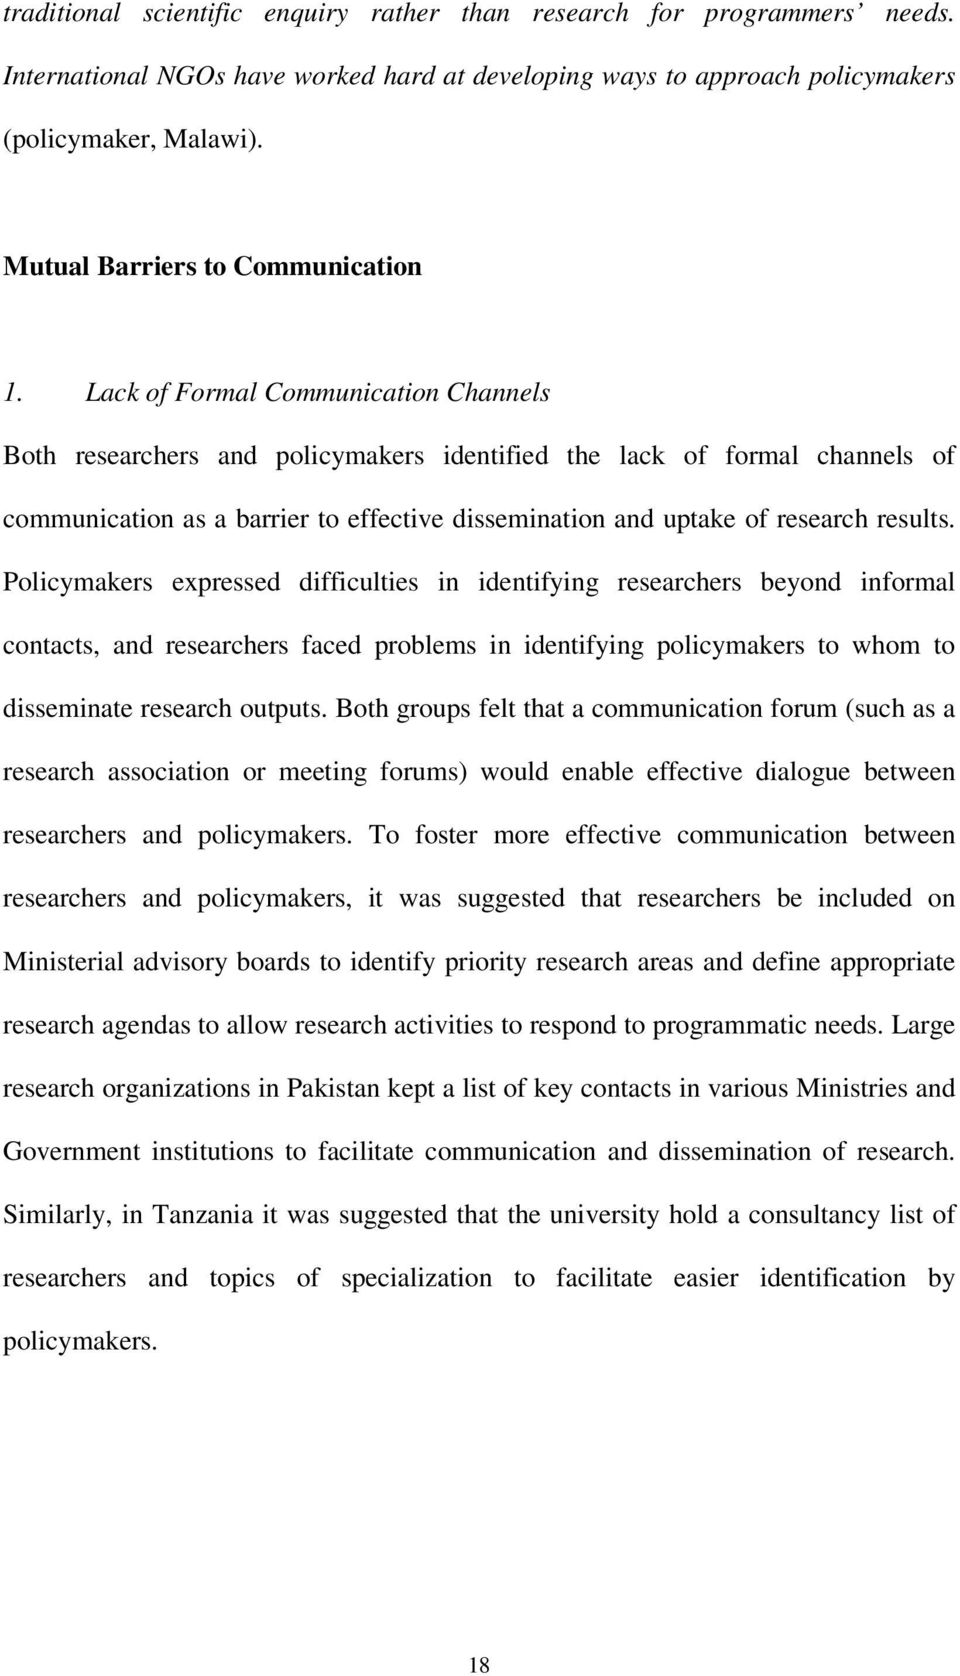 Lack of Formal Communication Channels Both researchers and policymakers identified the lack of formal channels of communication as a barrier to effective dissemination and uptake of research results.